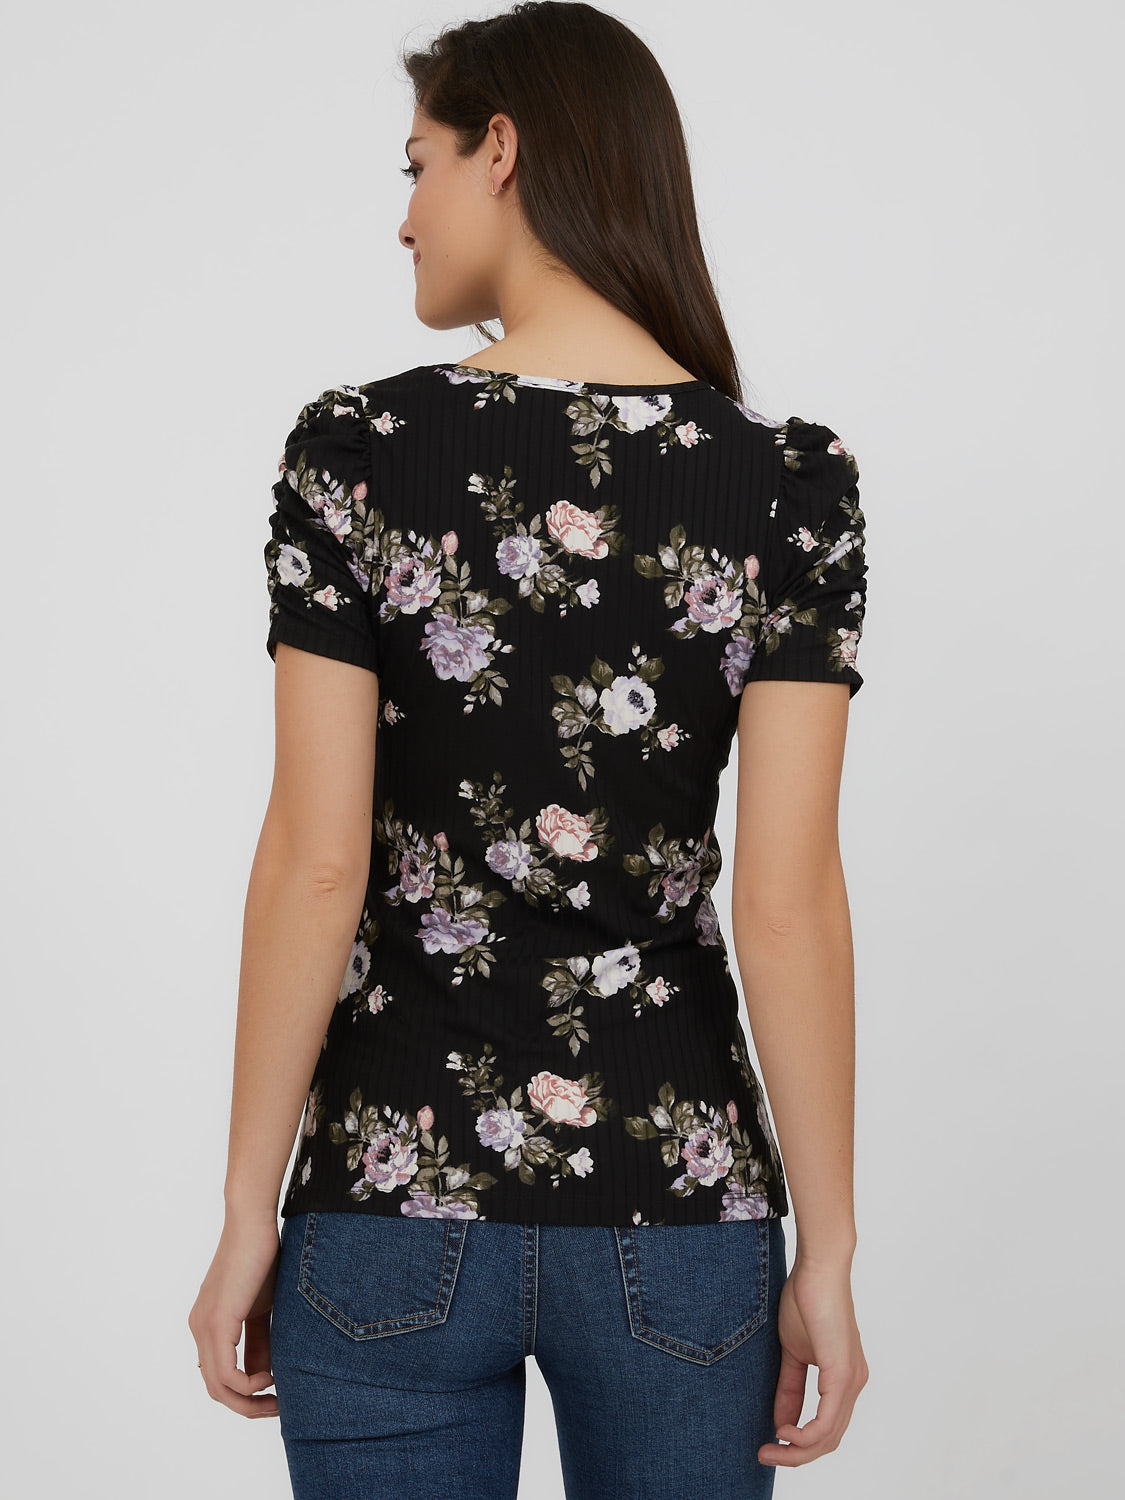 Puff Short Sleeve Rib Knit Floral Top